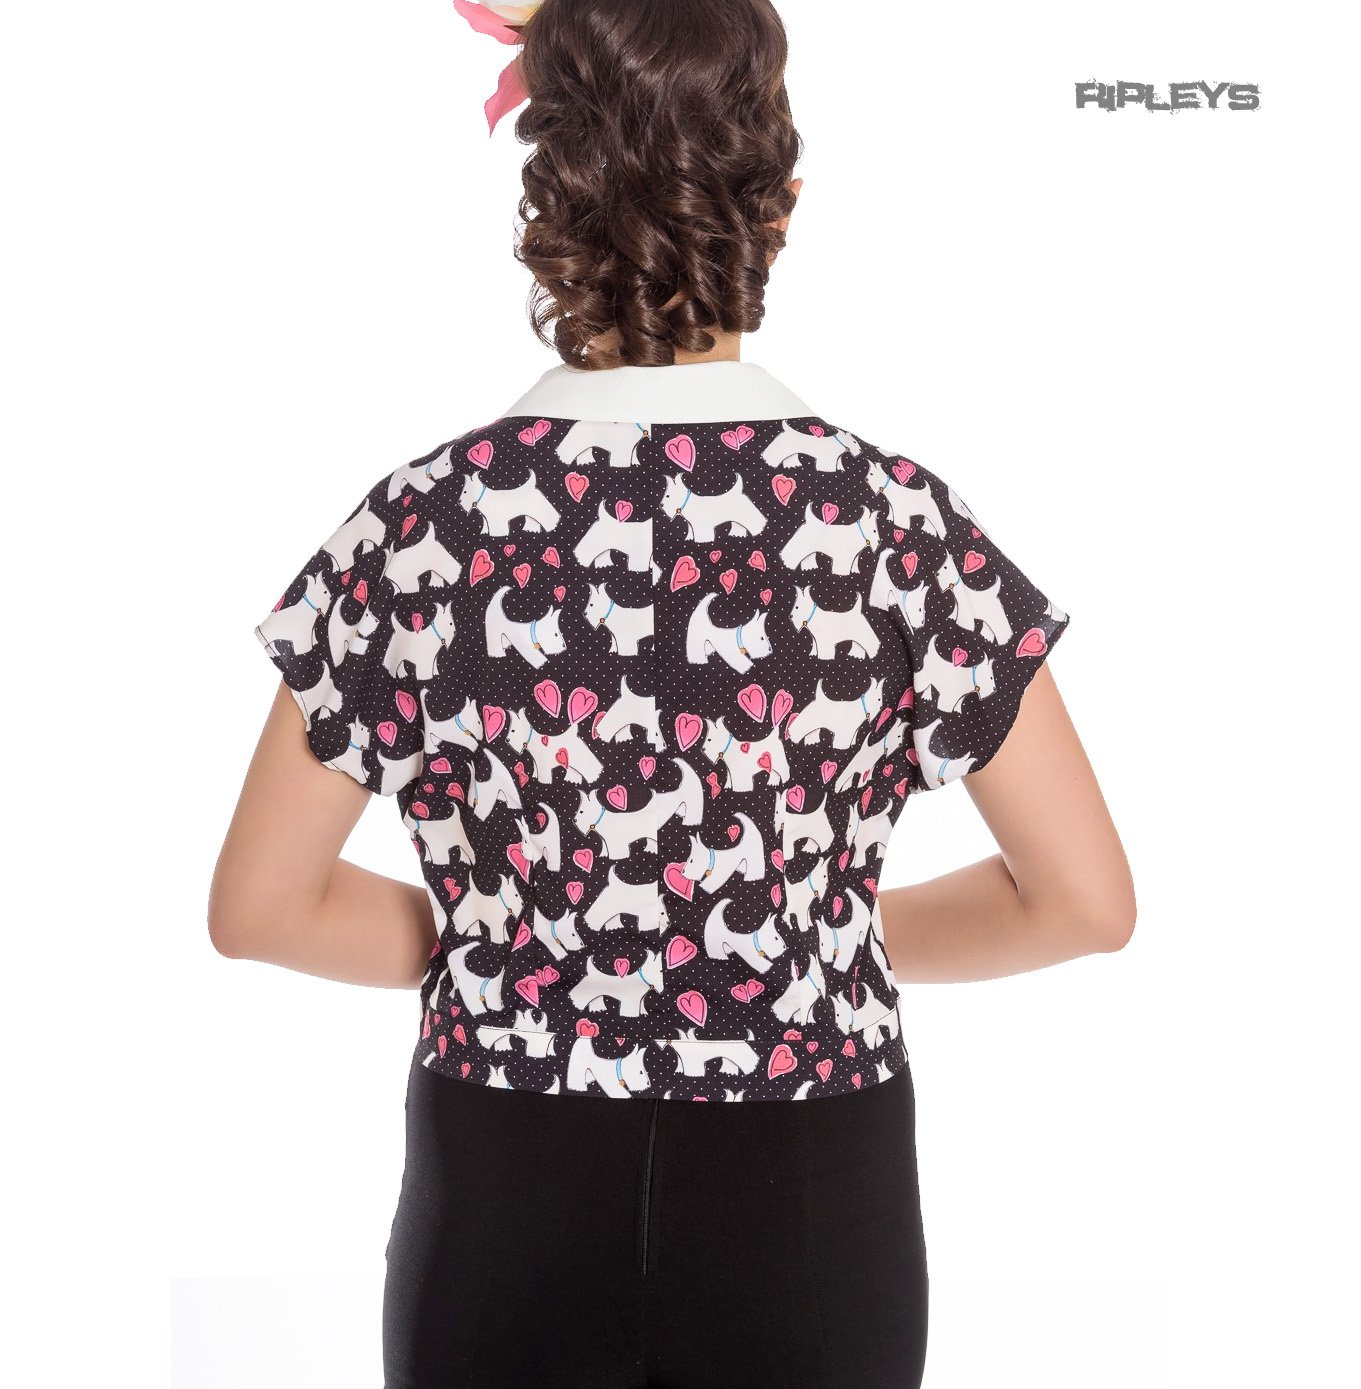 Hell-Bunny-50s-Retro-Top-Scottie-Dog-Heart-AGGY-Cropped-Blouse-Shirt-All-Sizes thumbnail 4